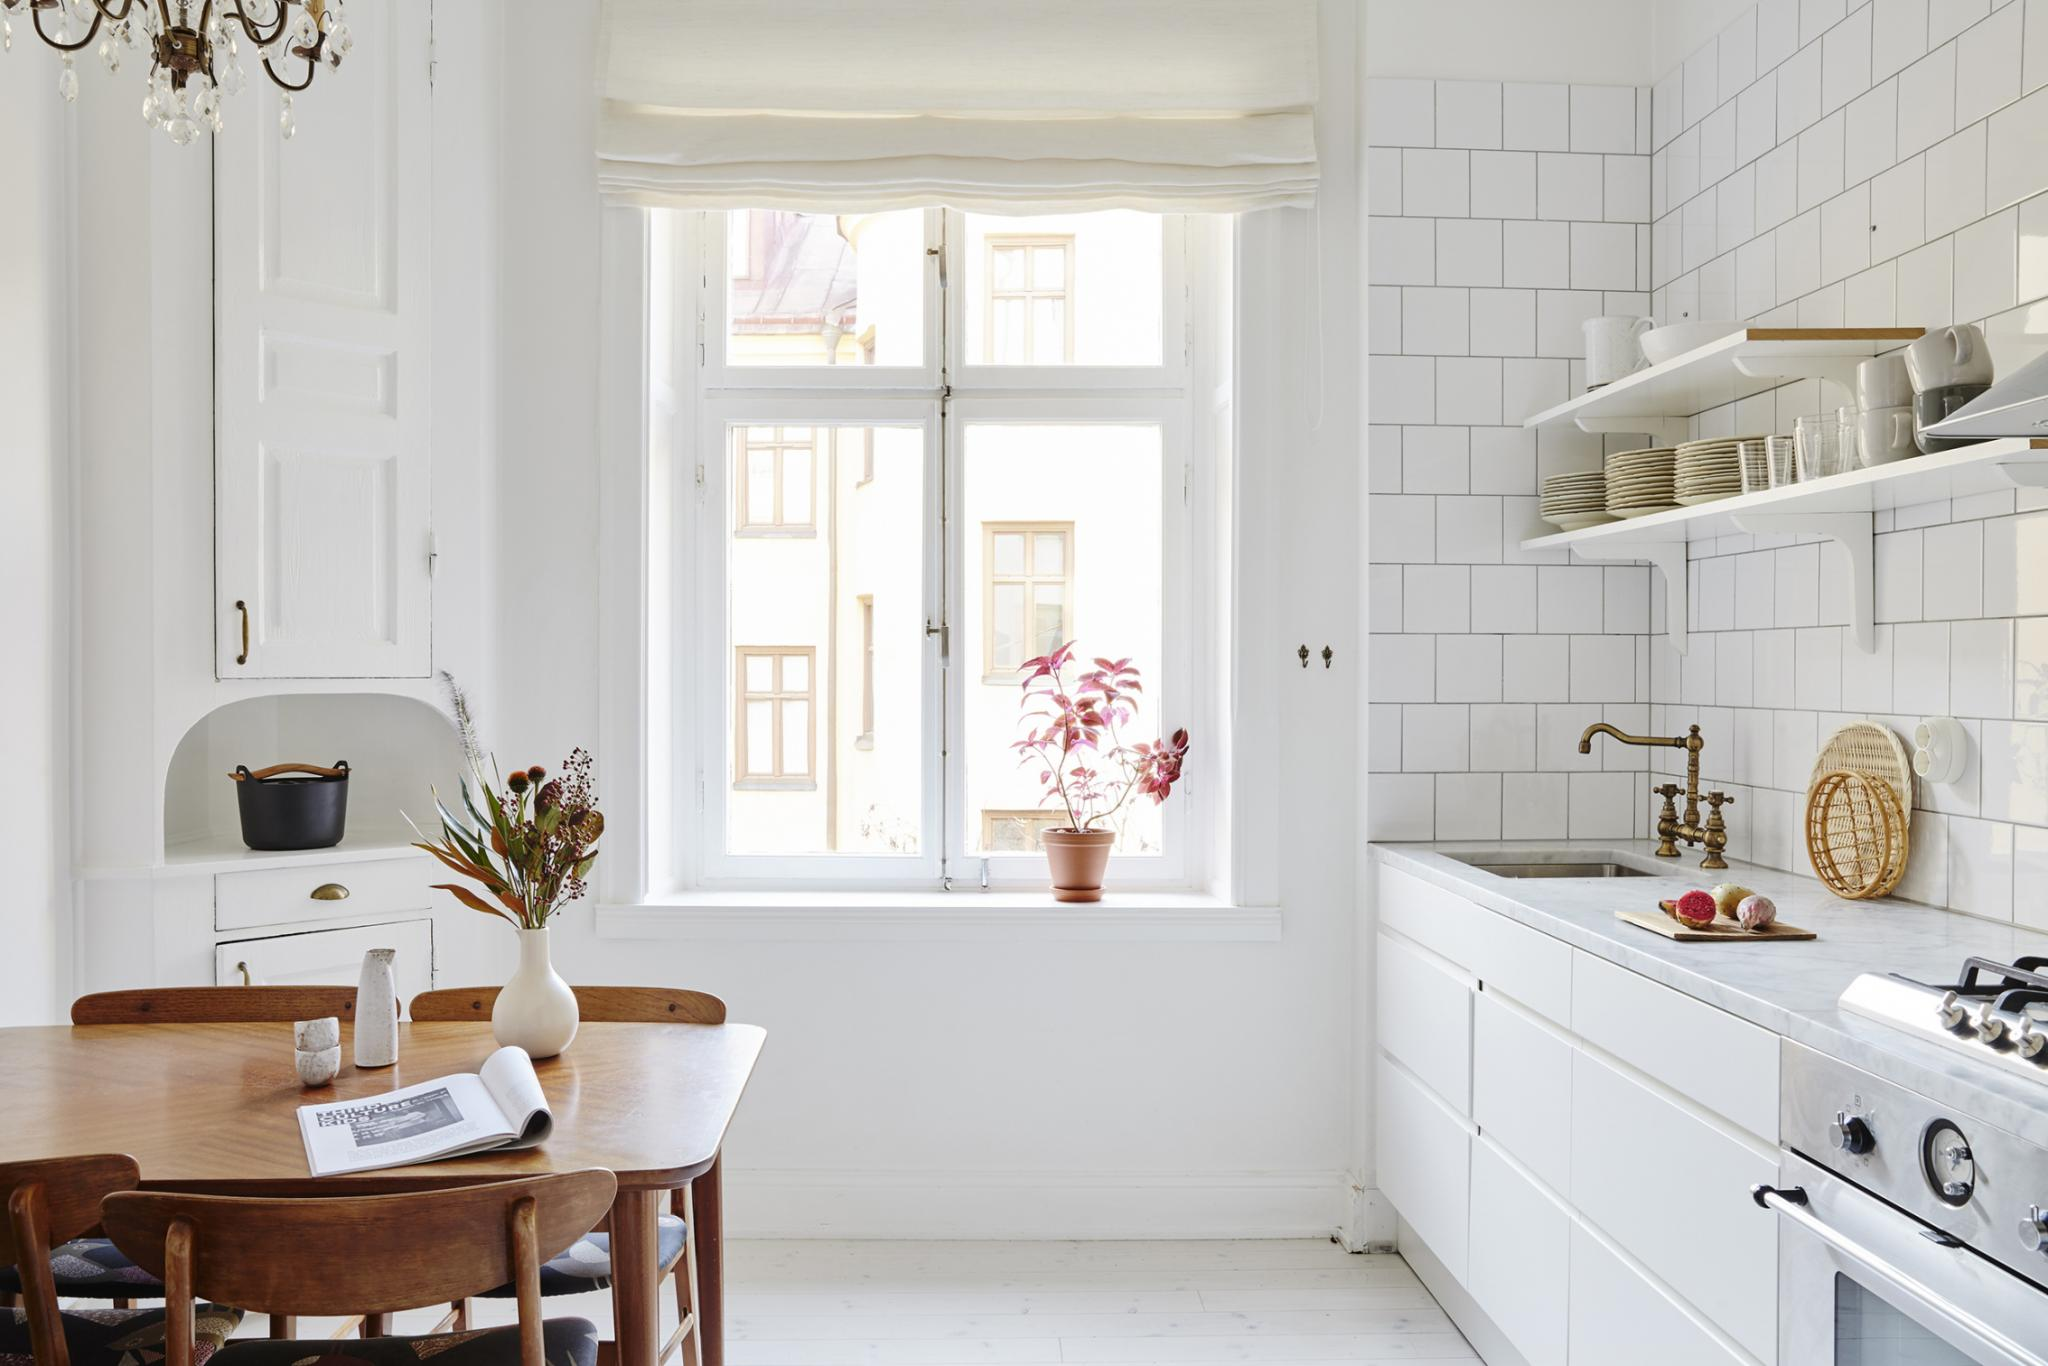 I like this white and bright kitchen with vintage elements the original vintage cupboard in white is such a nice element which is perfectly matched with